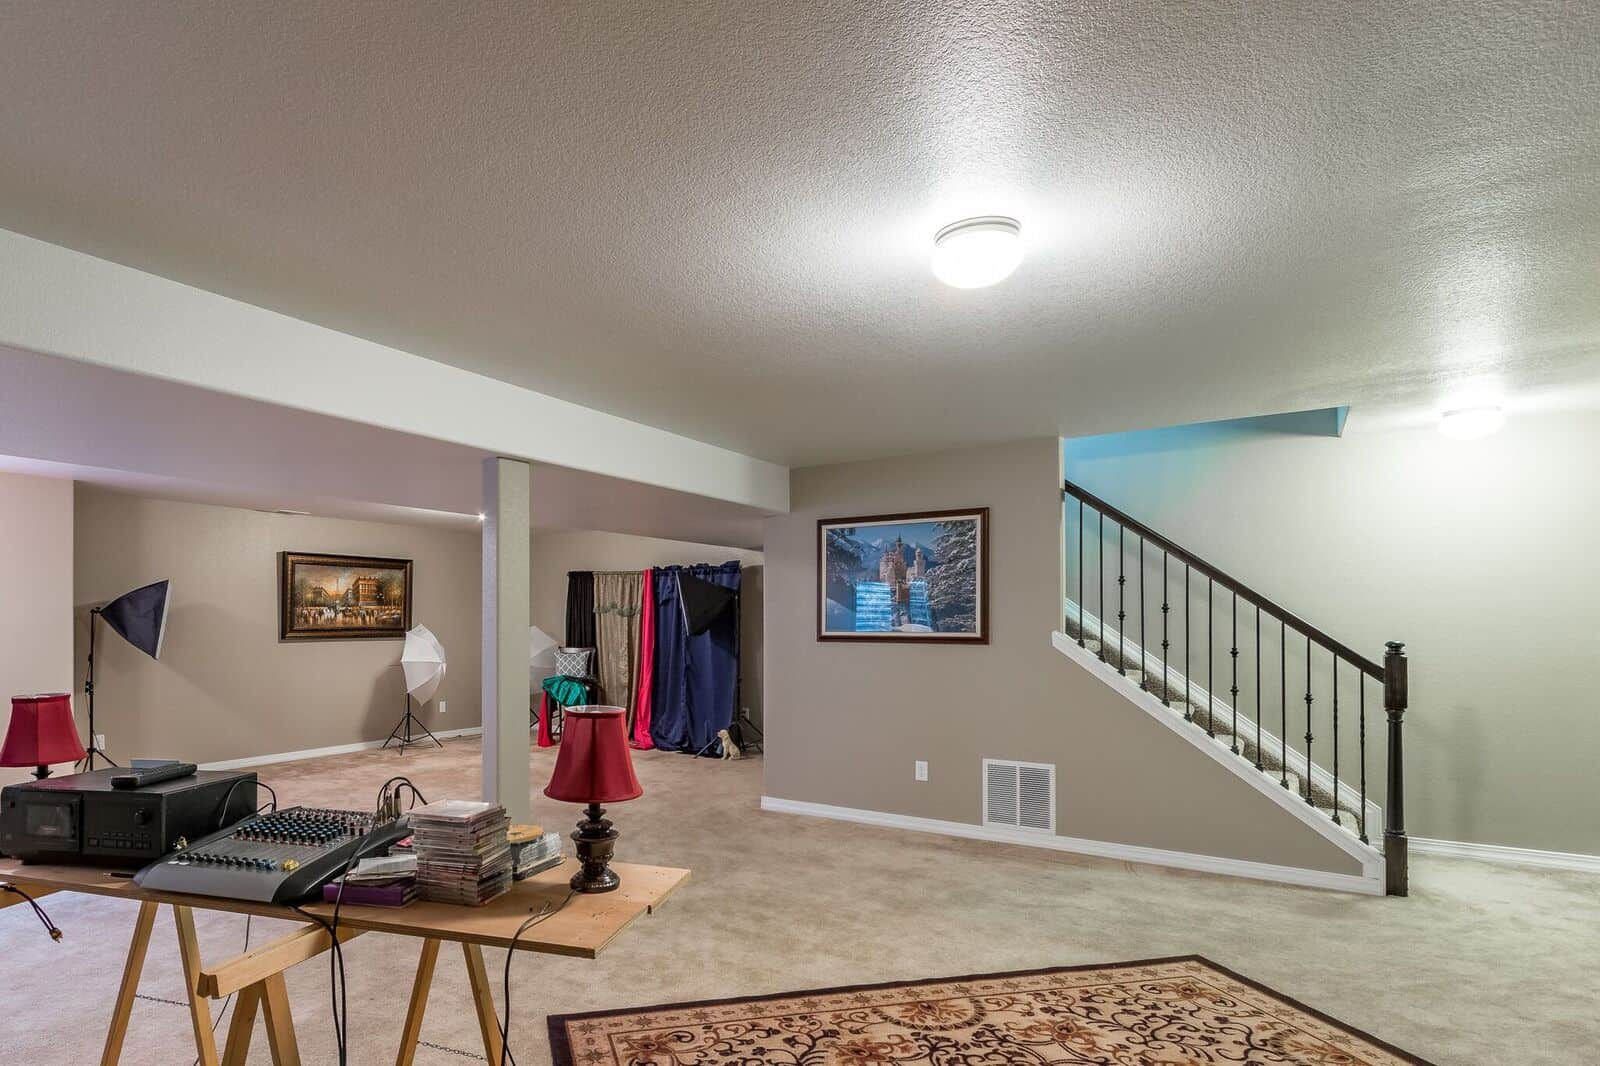 Basement Family Room w/Large BR4 currently used as Storage